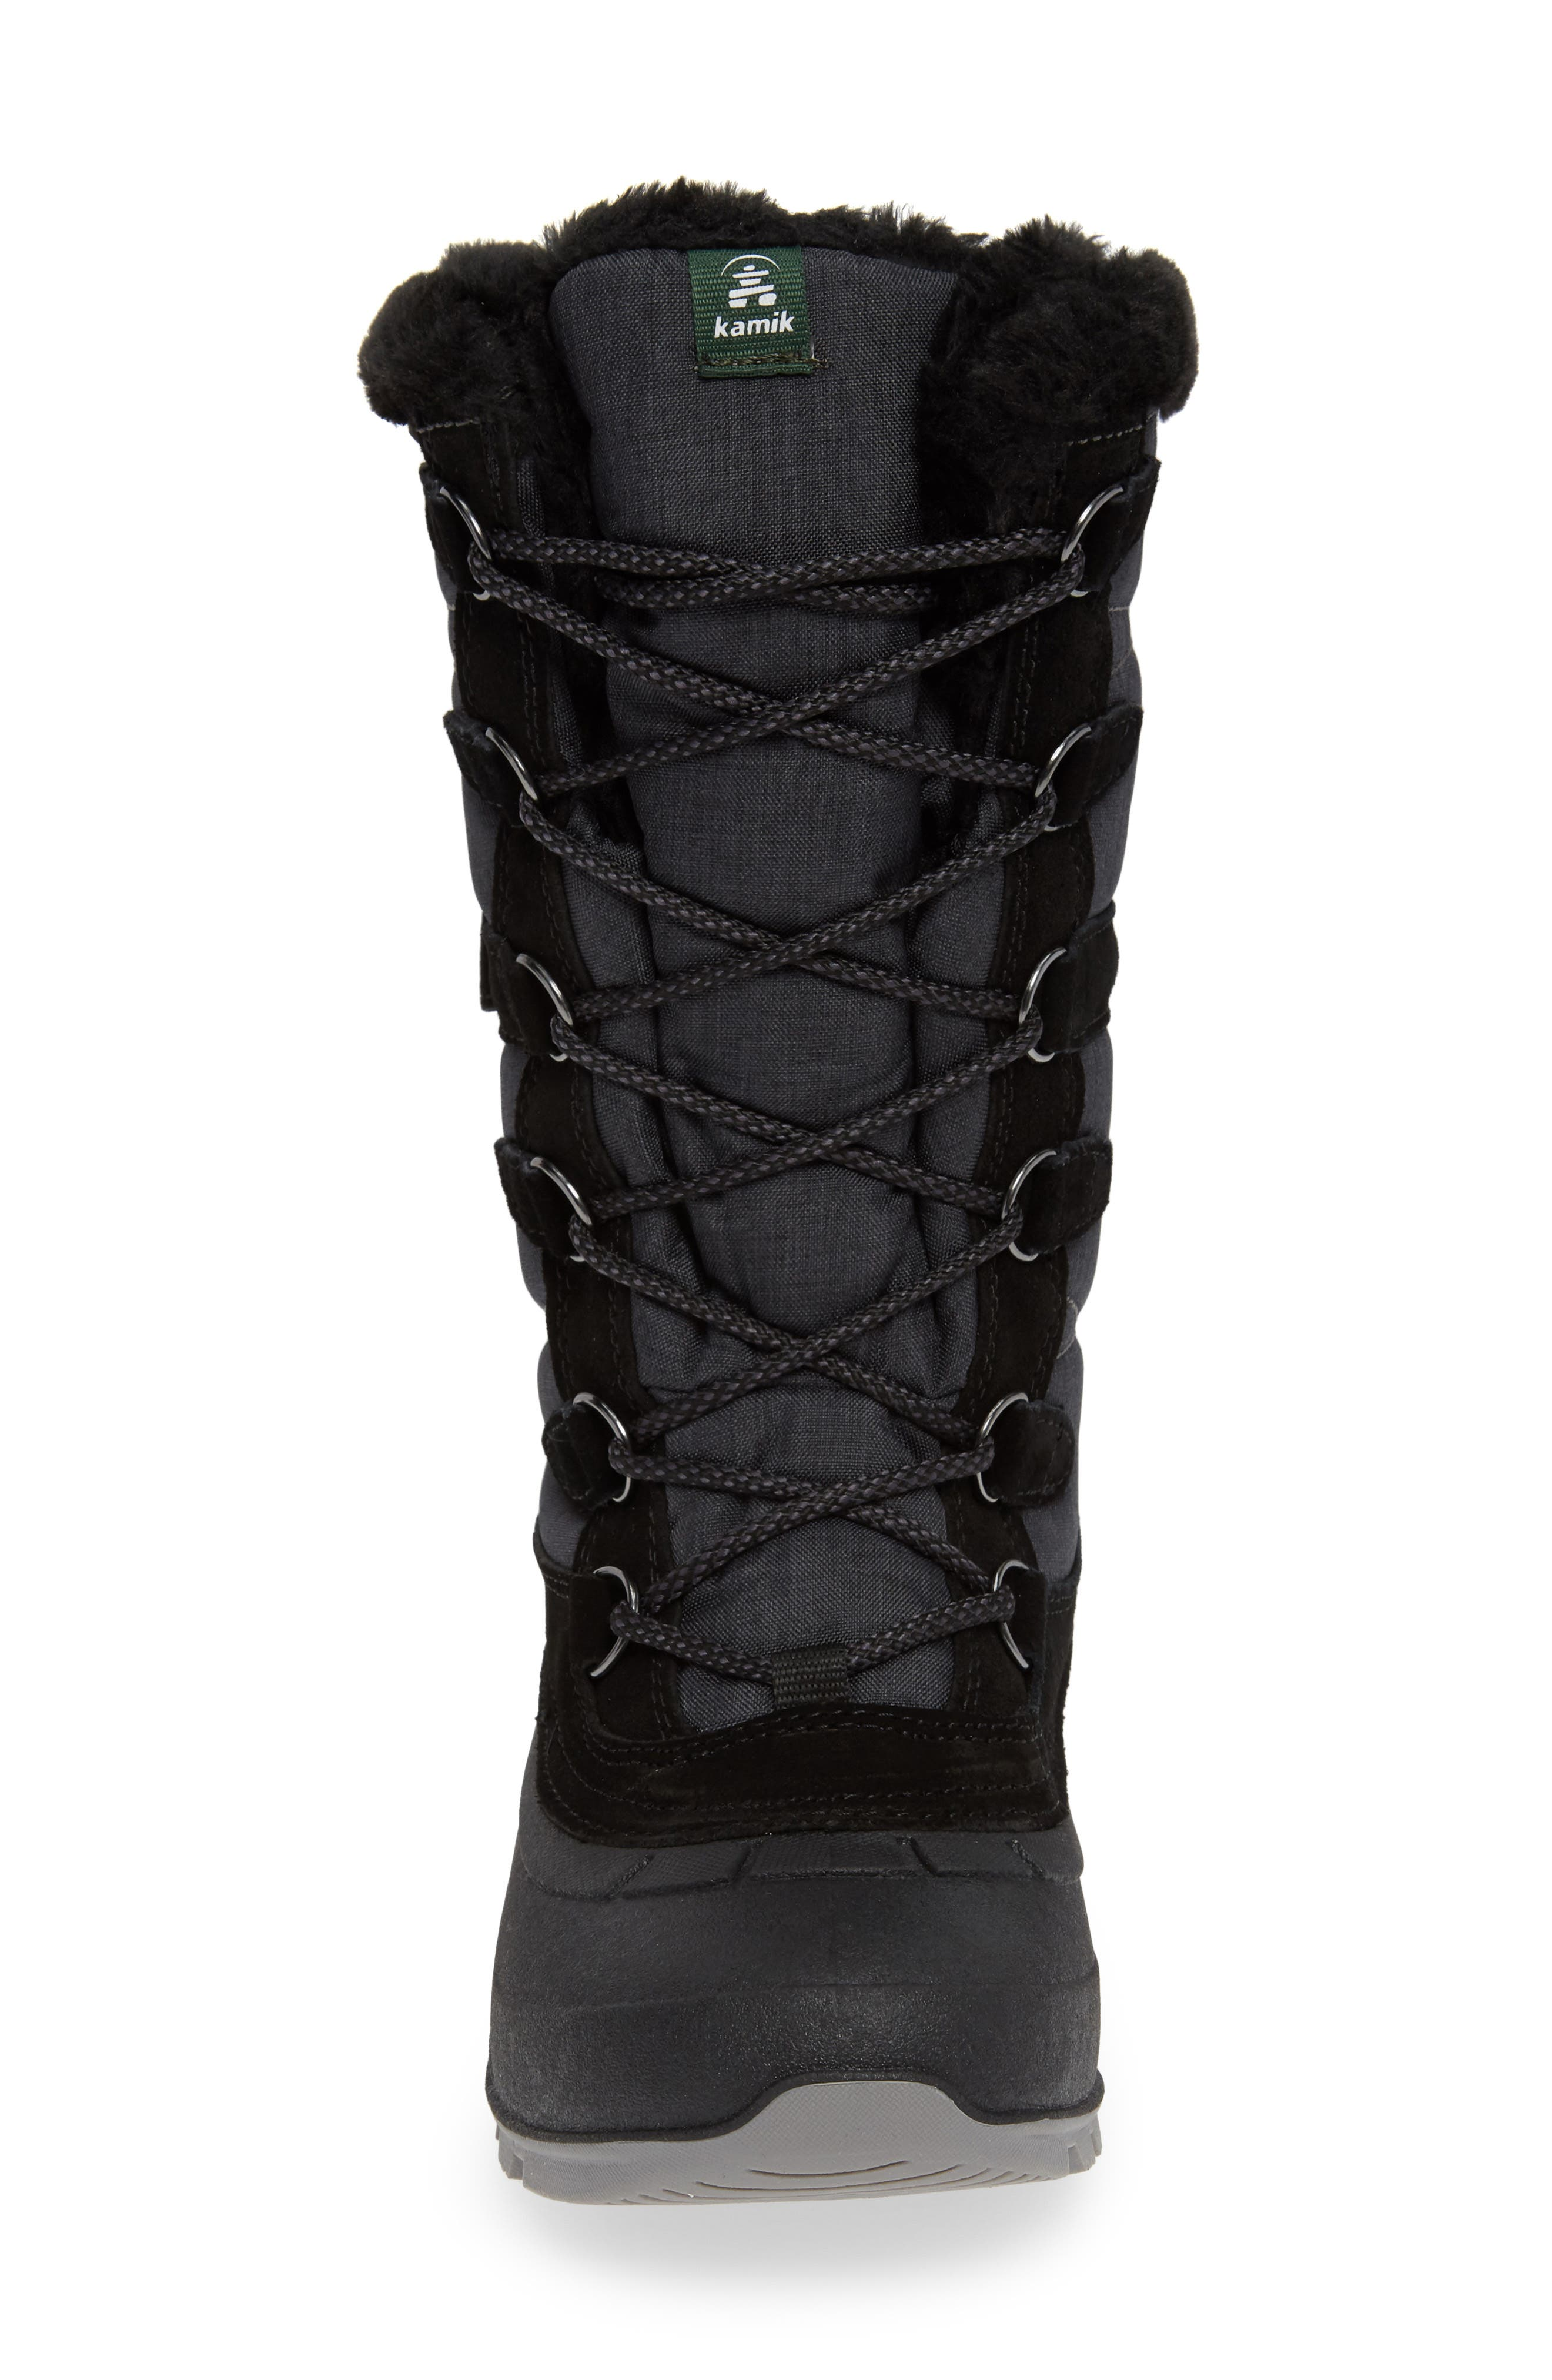 KAMIK, Snovalley2 Waterproof Thinsulate<sup>®</sup>-Insulated Snow Boot, Alternate thumbnail 4, color, 001